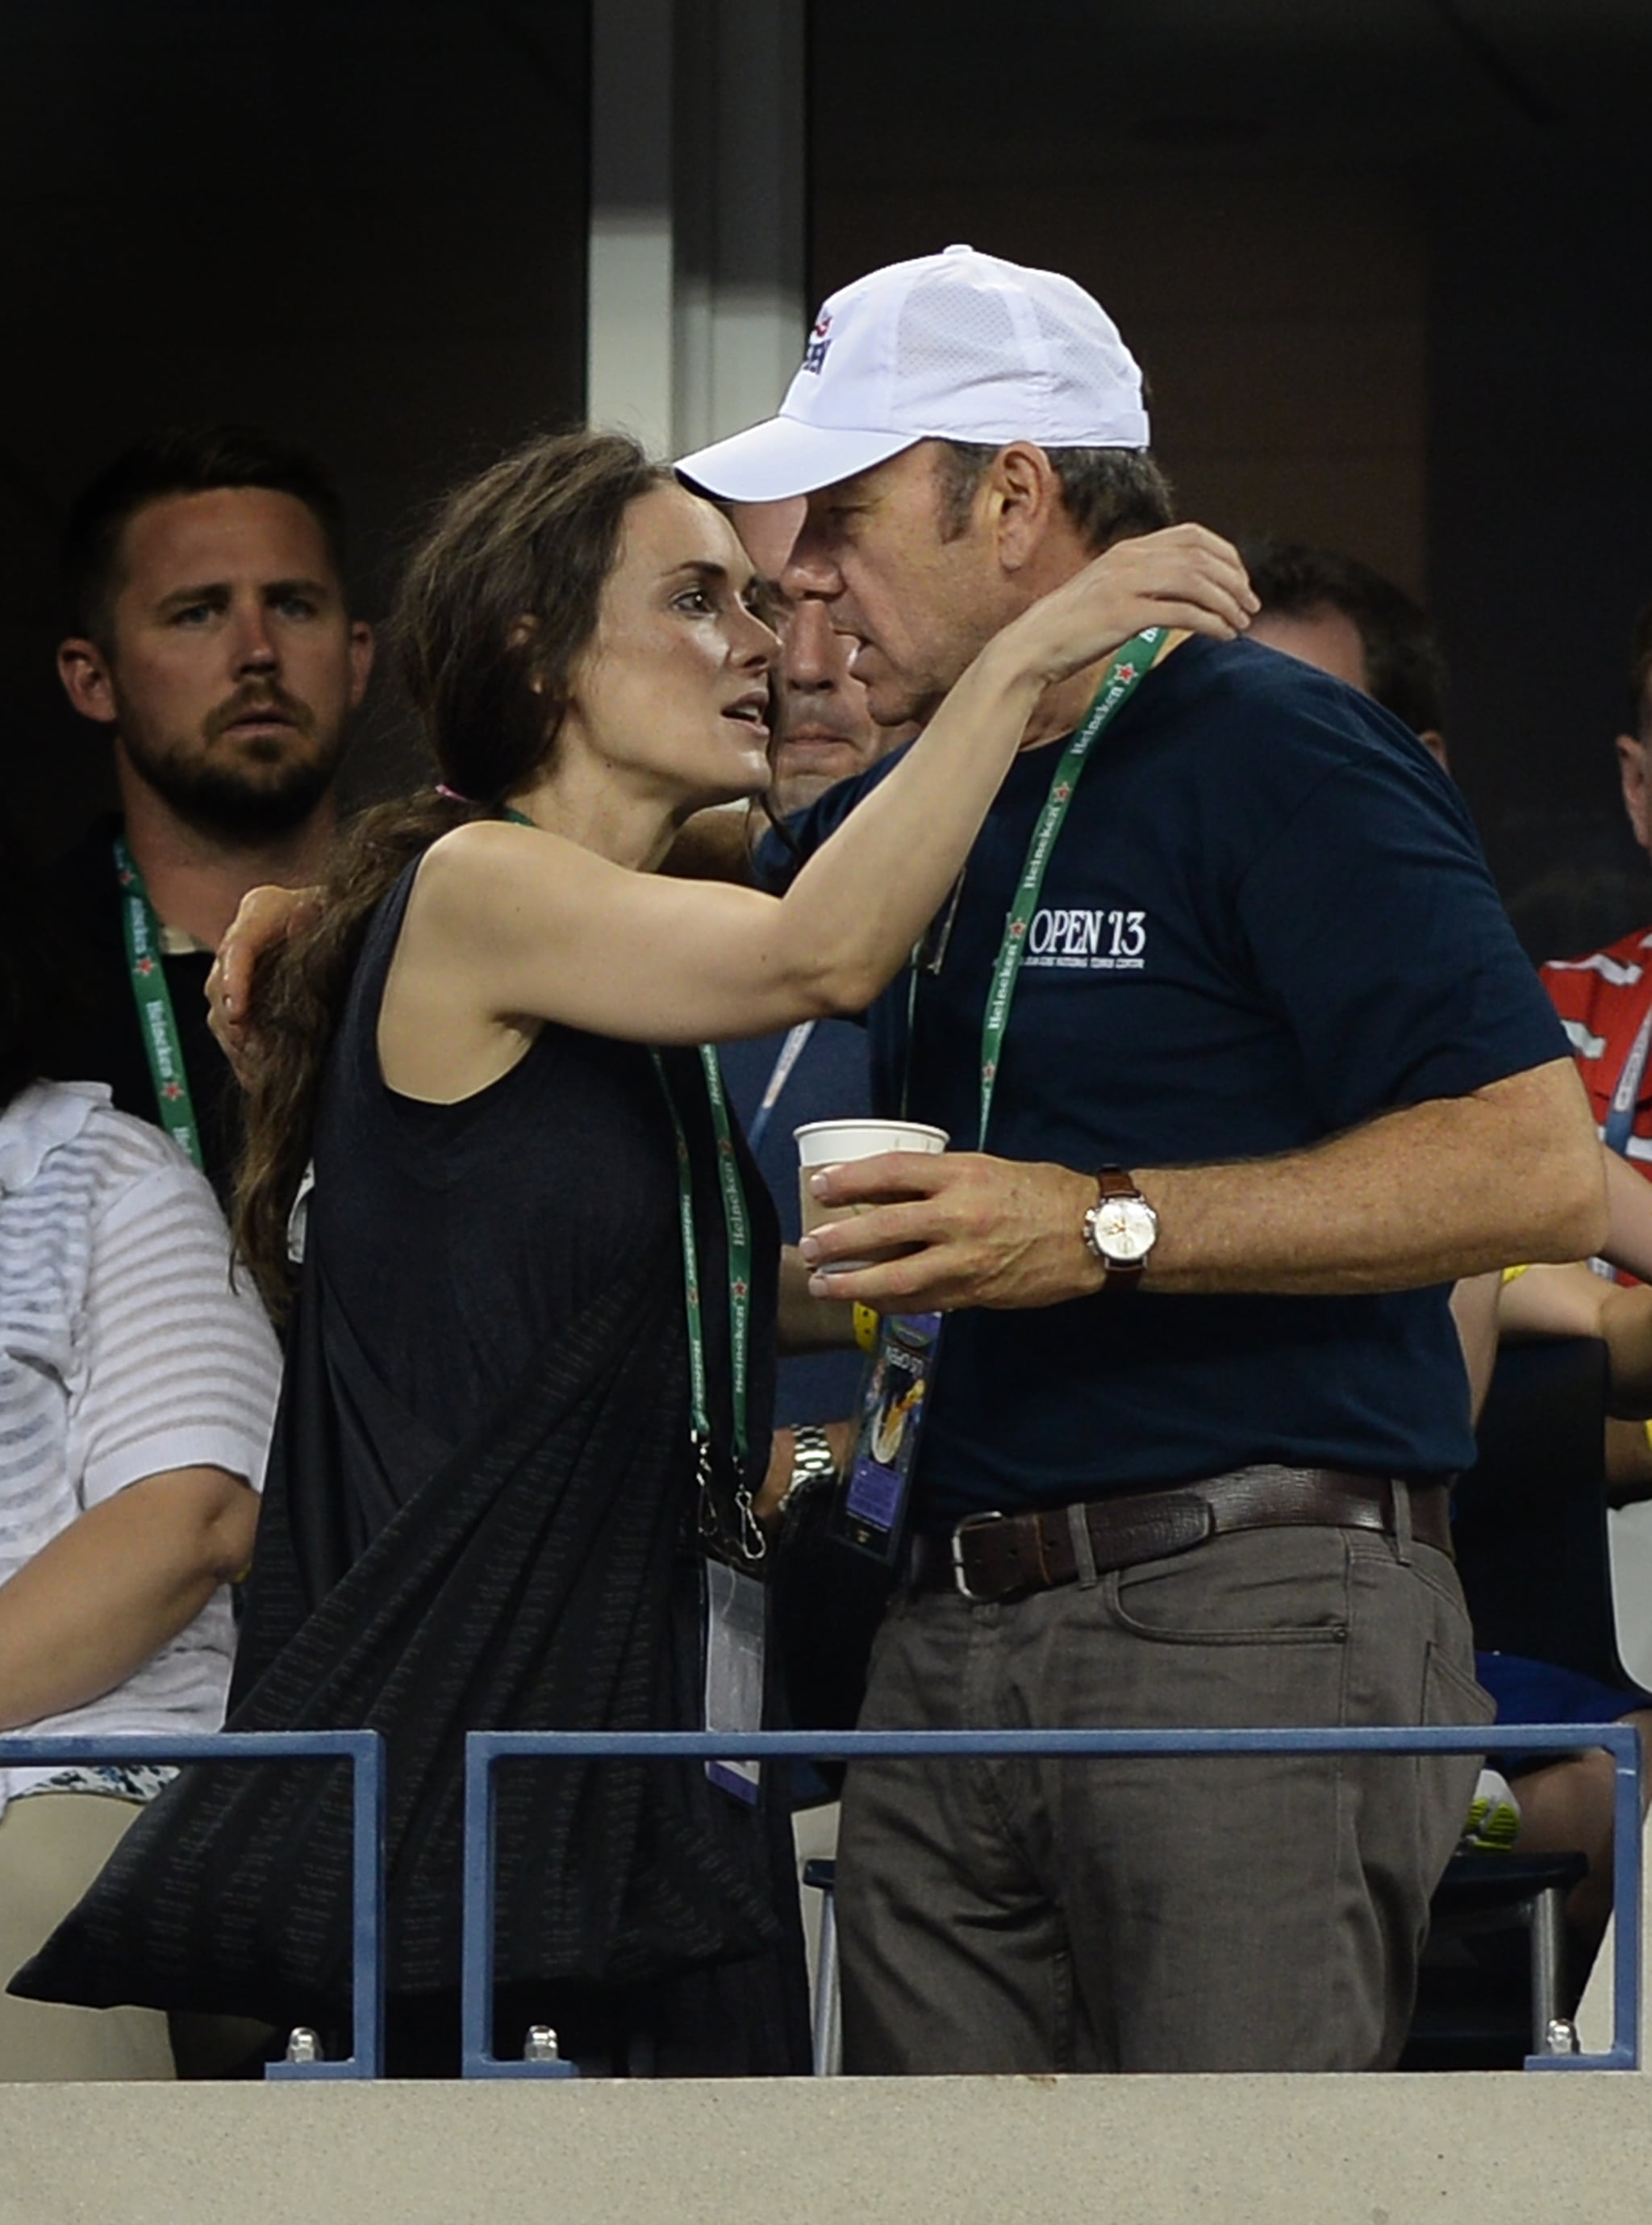 Winona Ryder and Kevin Spacey had a moment at the US Open.